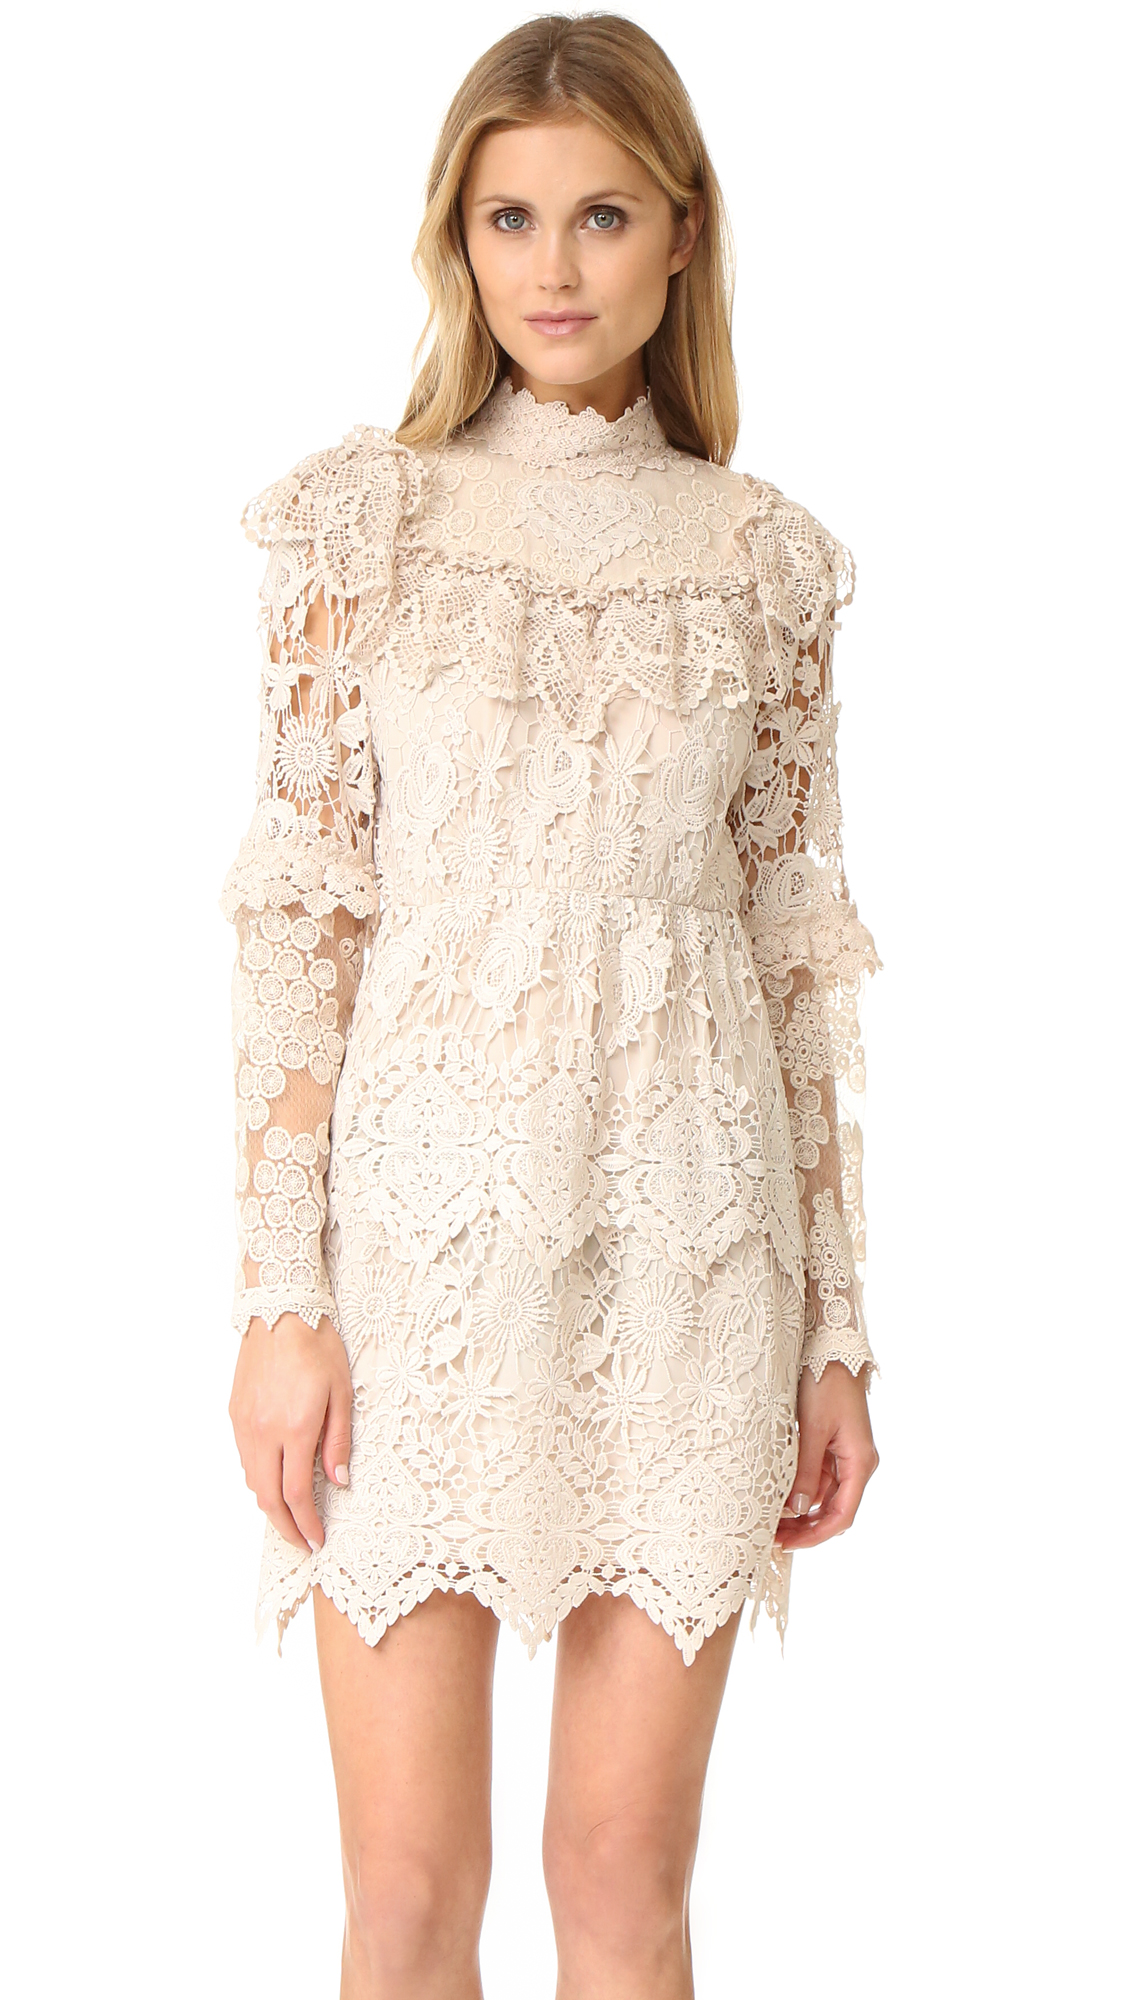 A romantic, victorian inspired Anna Sui dress made from delicate lace. The sheer yoke and sleeves are detailed with filmy, embroidered insets. Ruffle trim and zigzag edges add a dainty finish. Hidden back zip. Tonal lining.